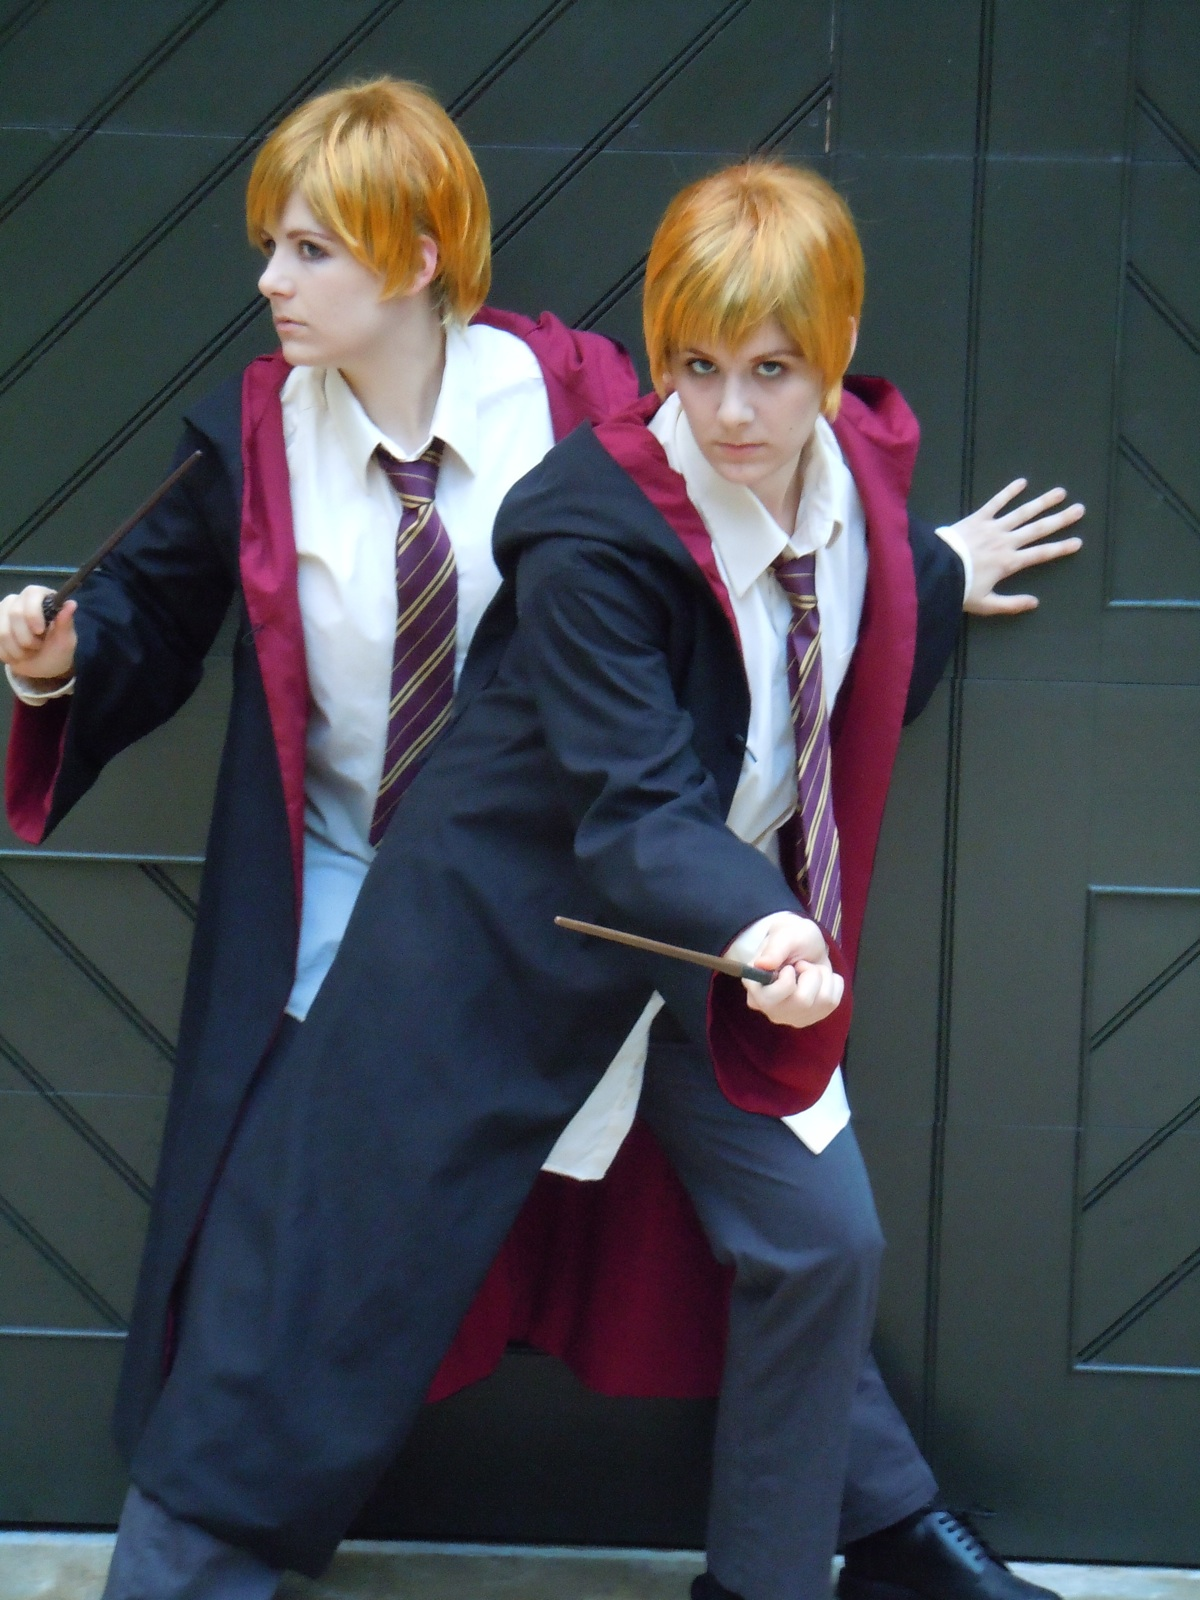 Fred weasley harry potter that would